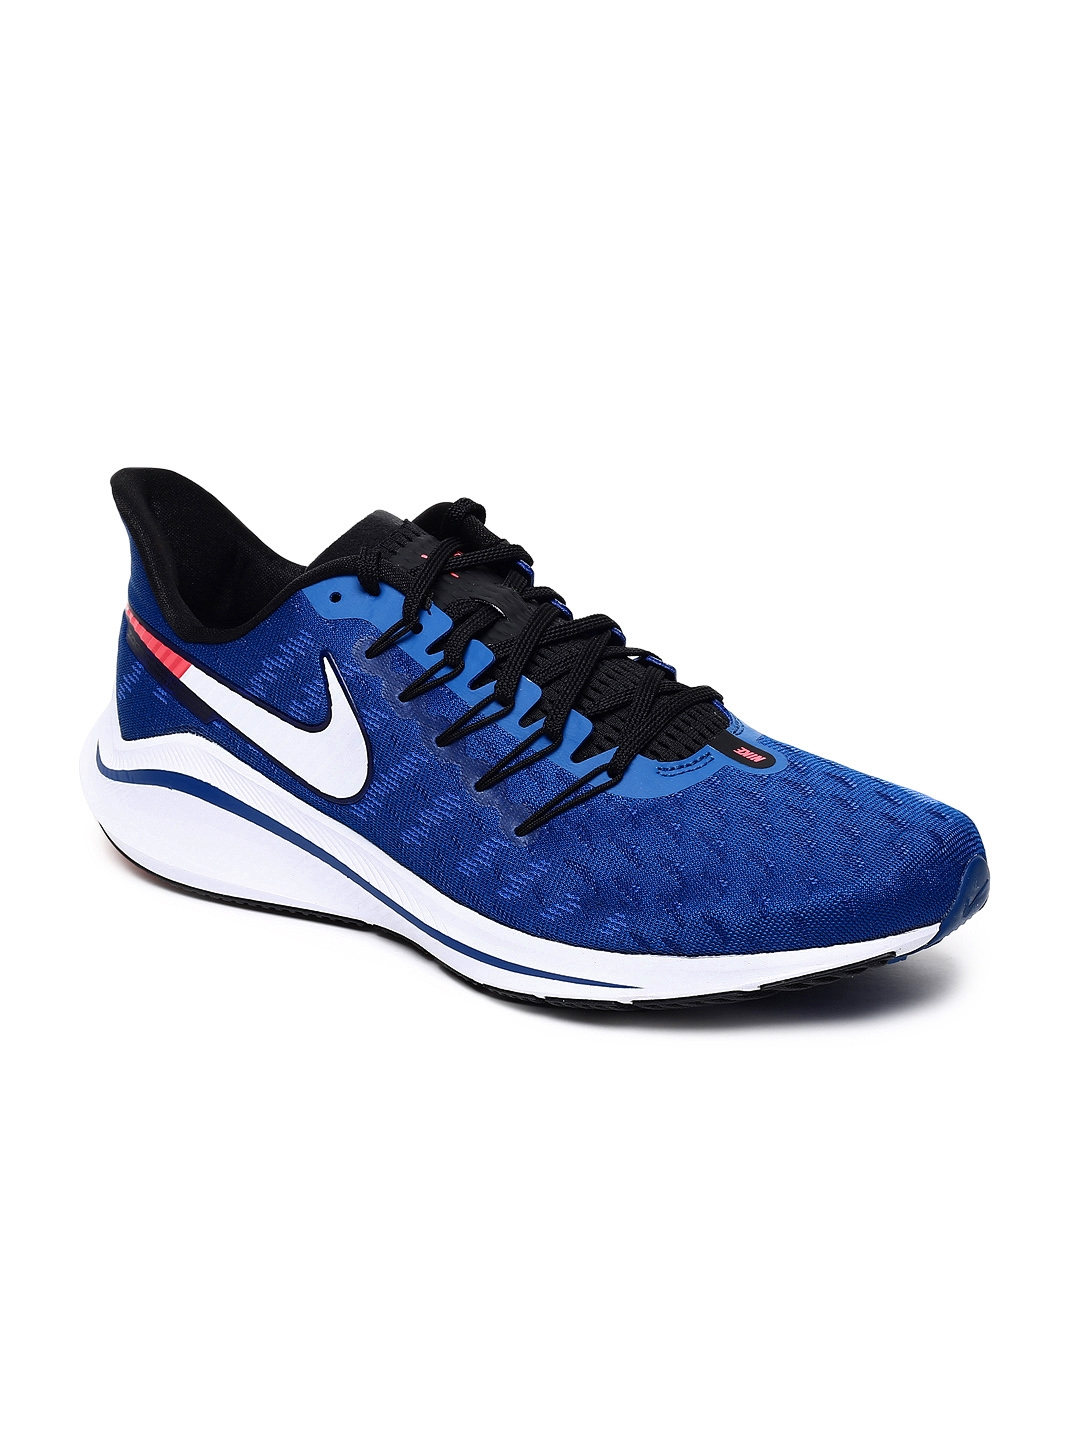 différemment edbc9 25372 Nike Men Blue Air Zoom Vomero 14 Running Shoes